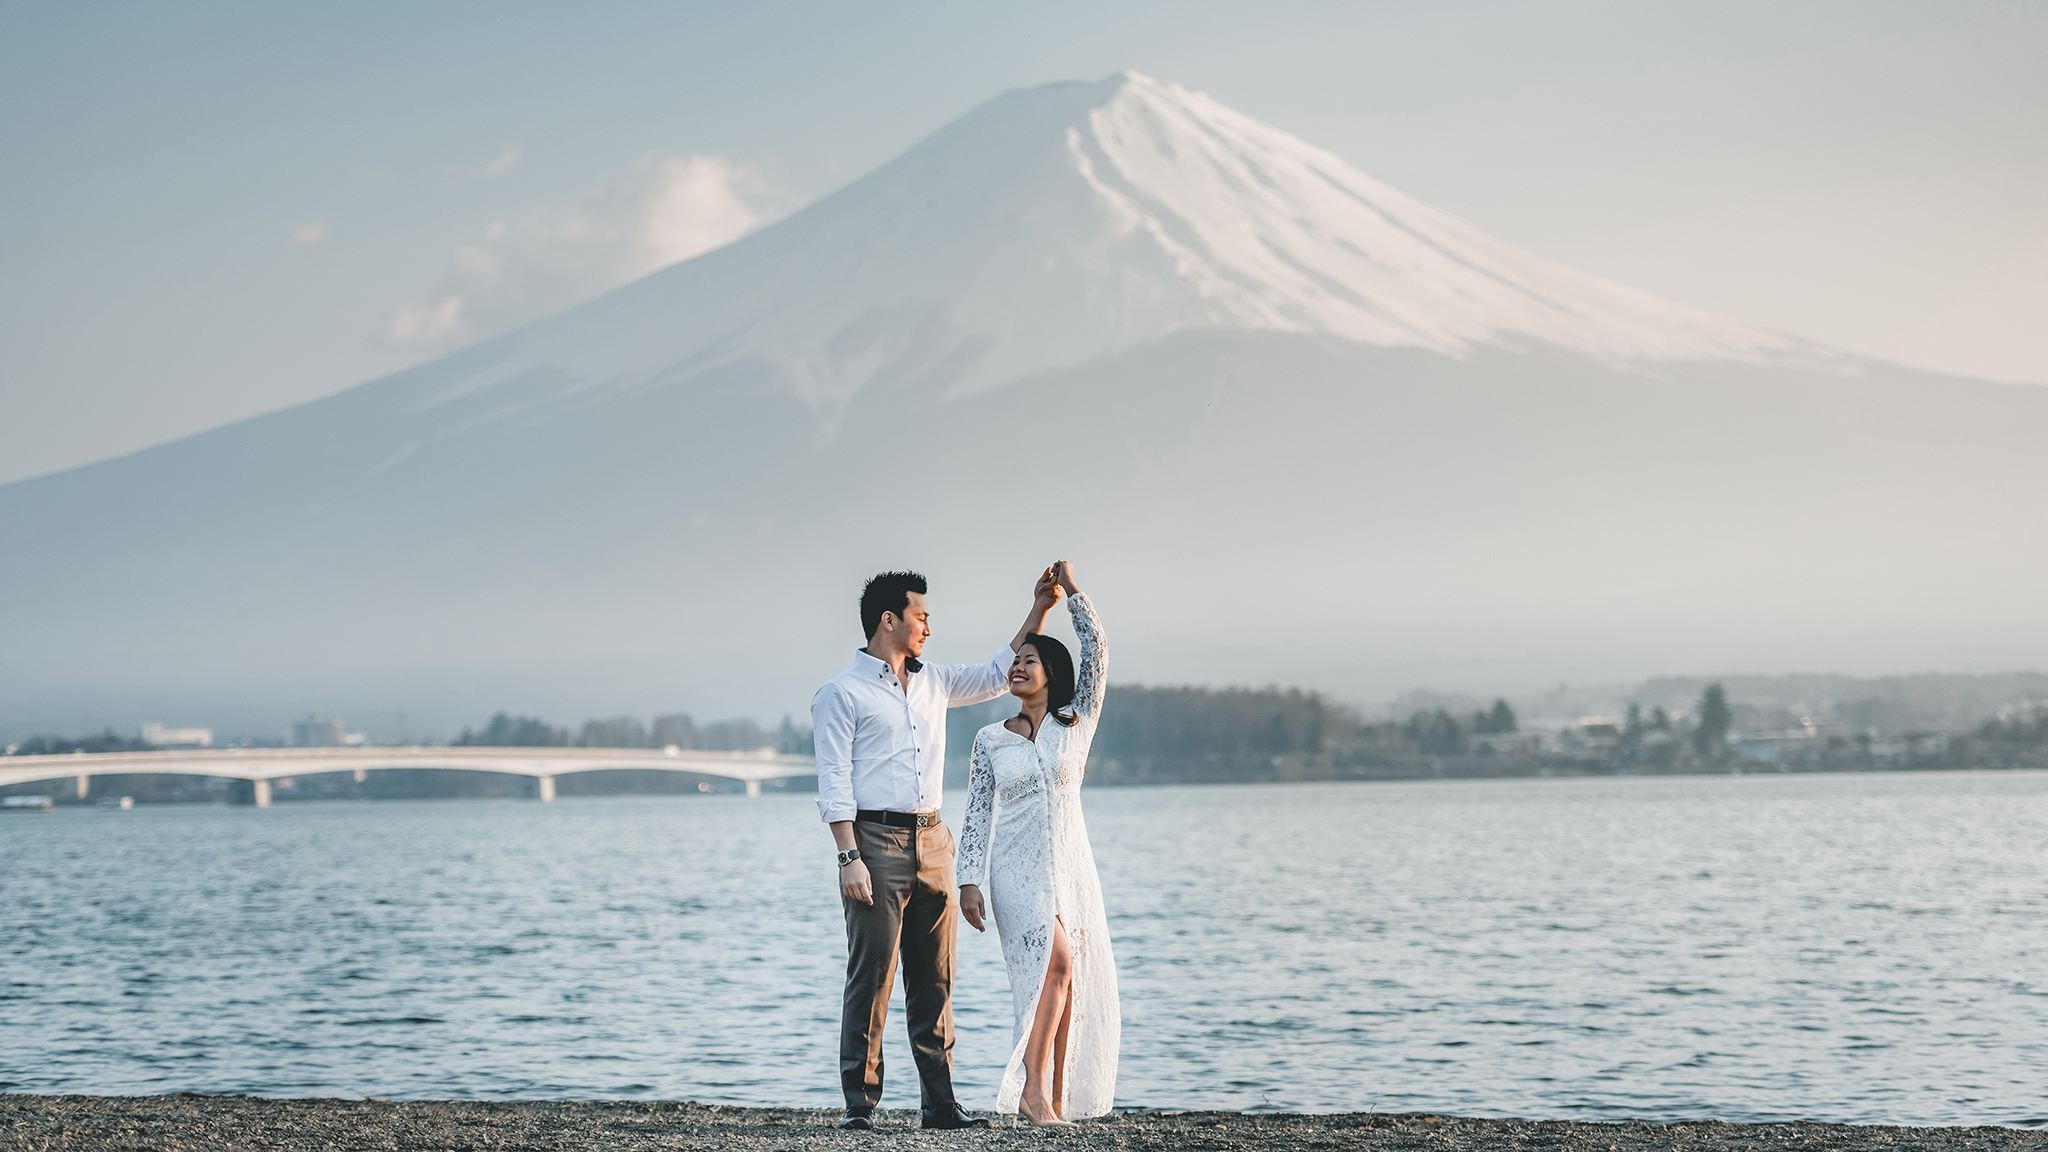 Japan Prewedding 41.JPG